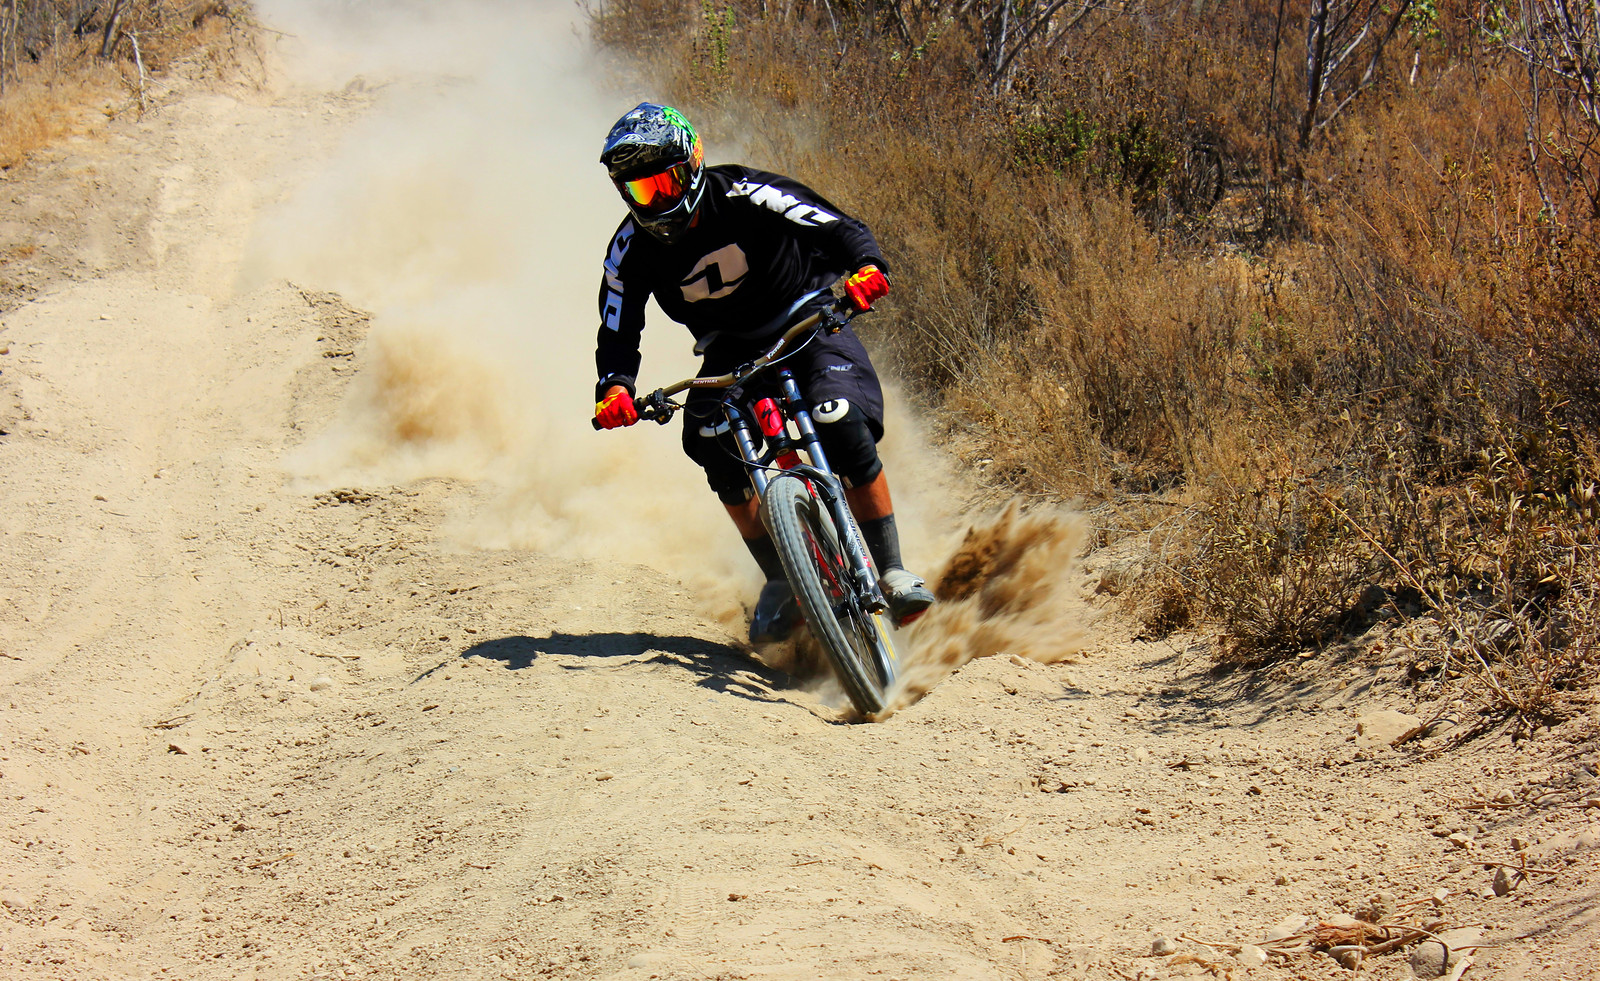 Brown Pow - ryemar21 - Mountain Biking Pictures - Vital MTB